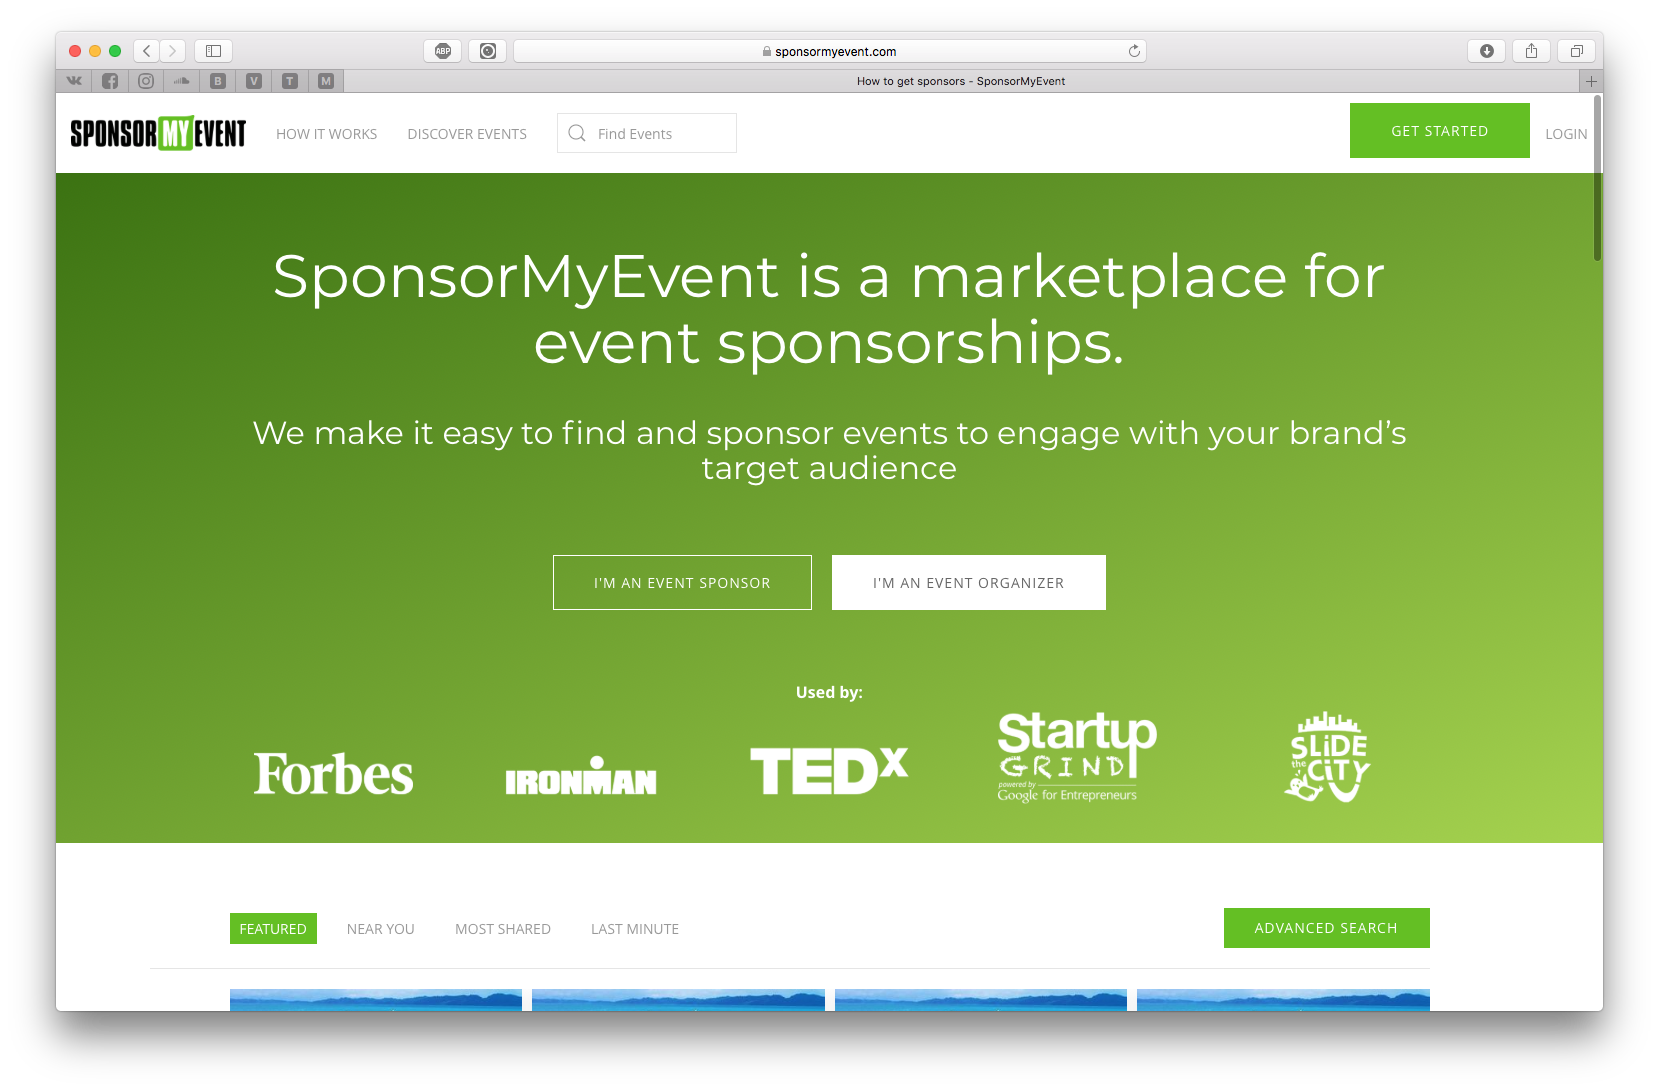 Sponsor My Event is the easy way to find and sponsor events to engage with your brand's target audience